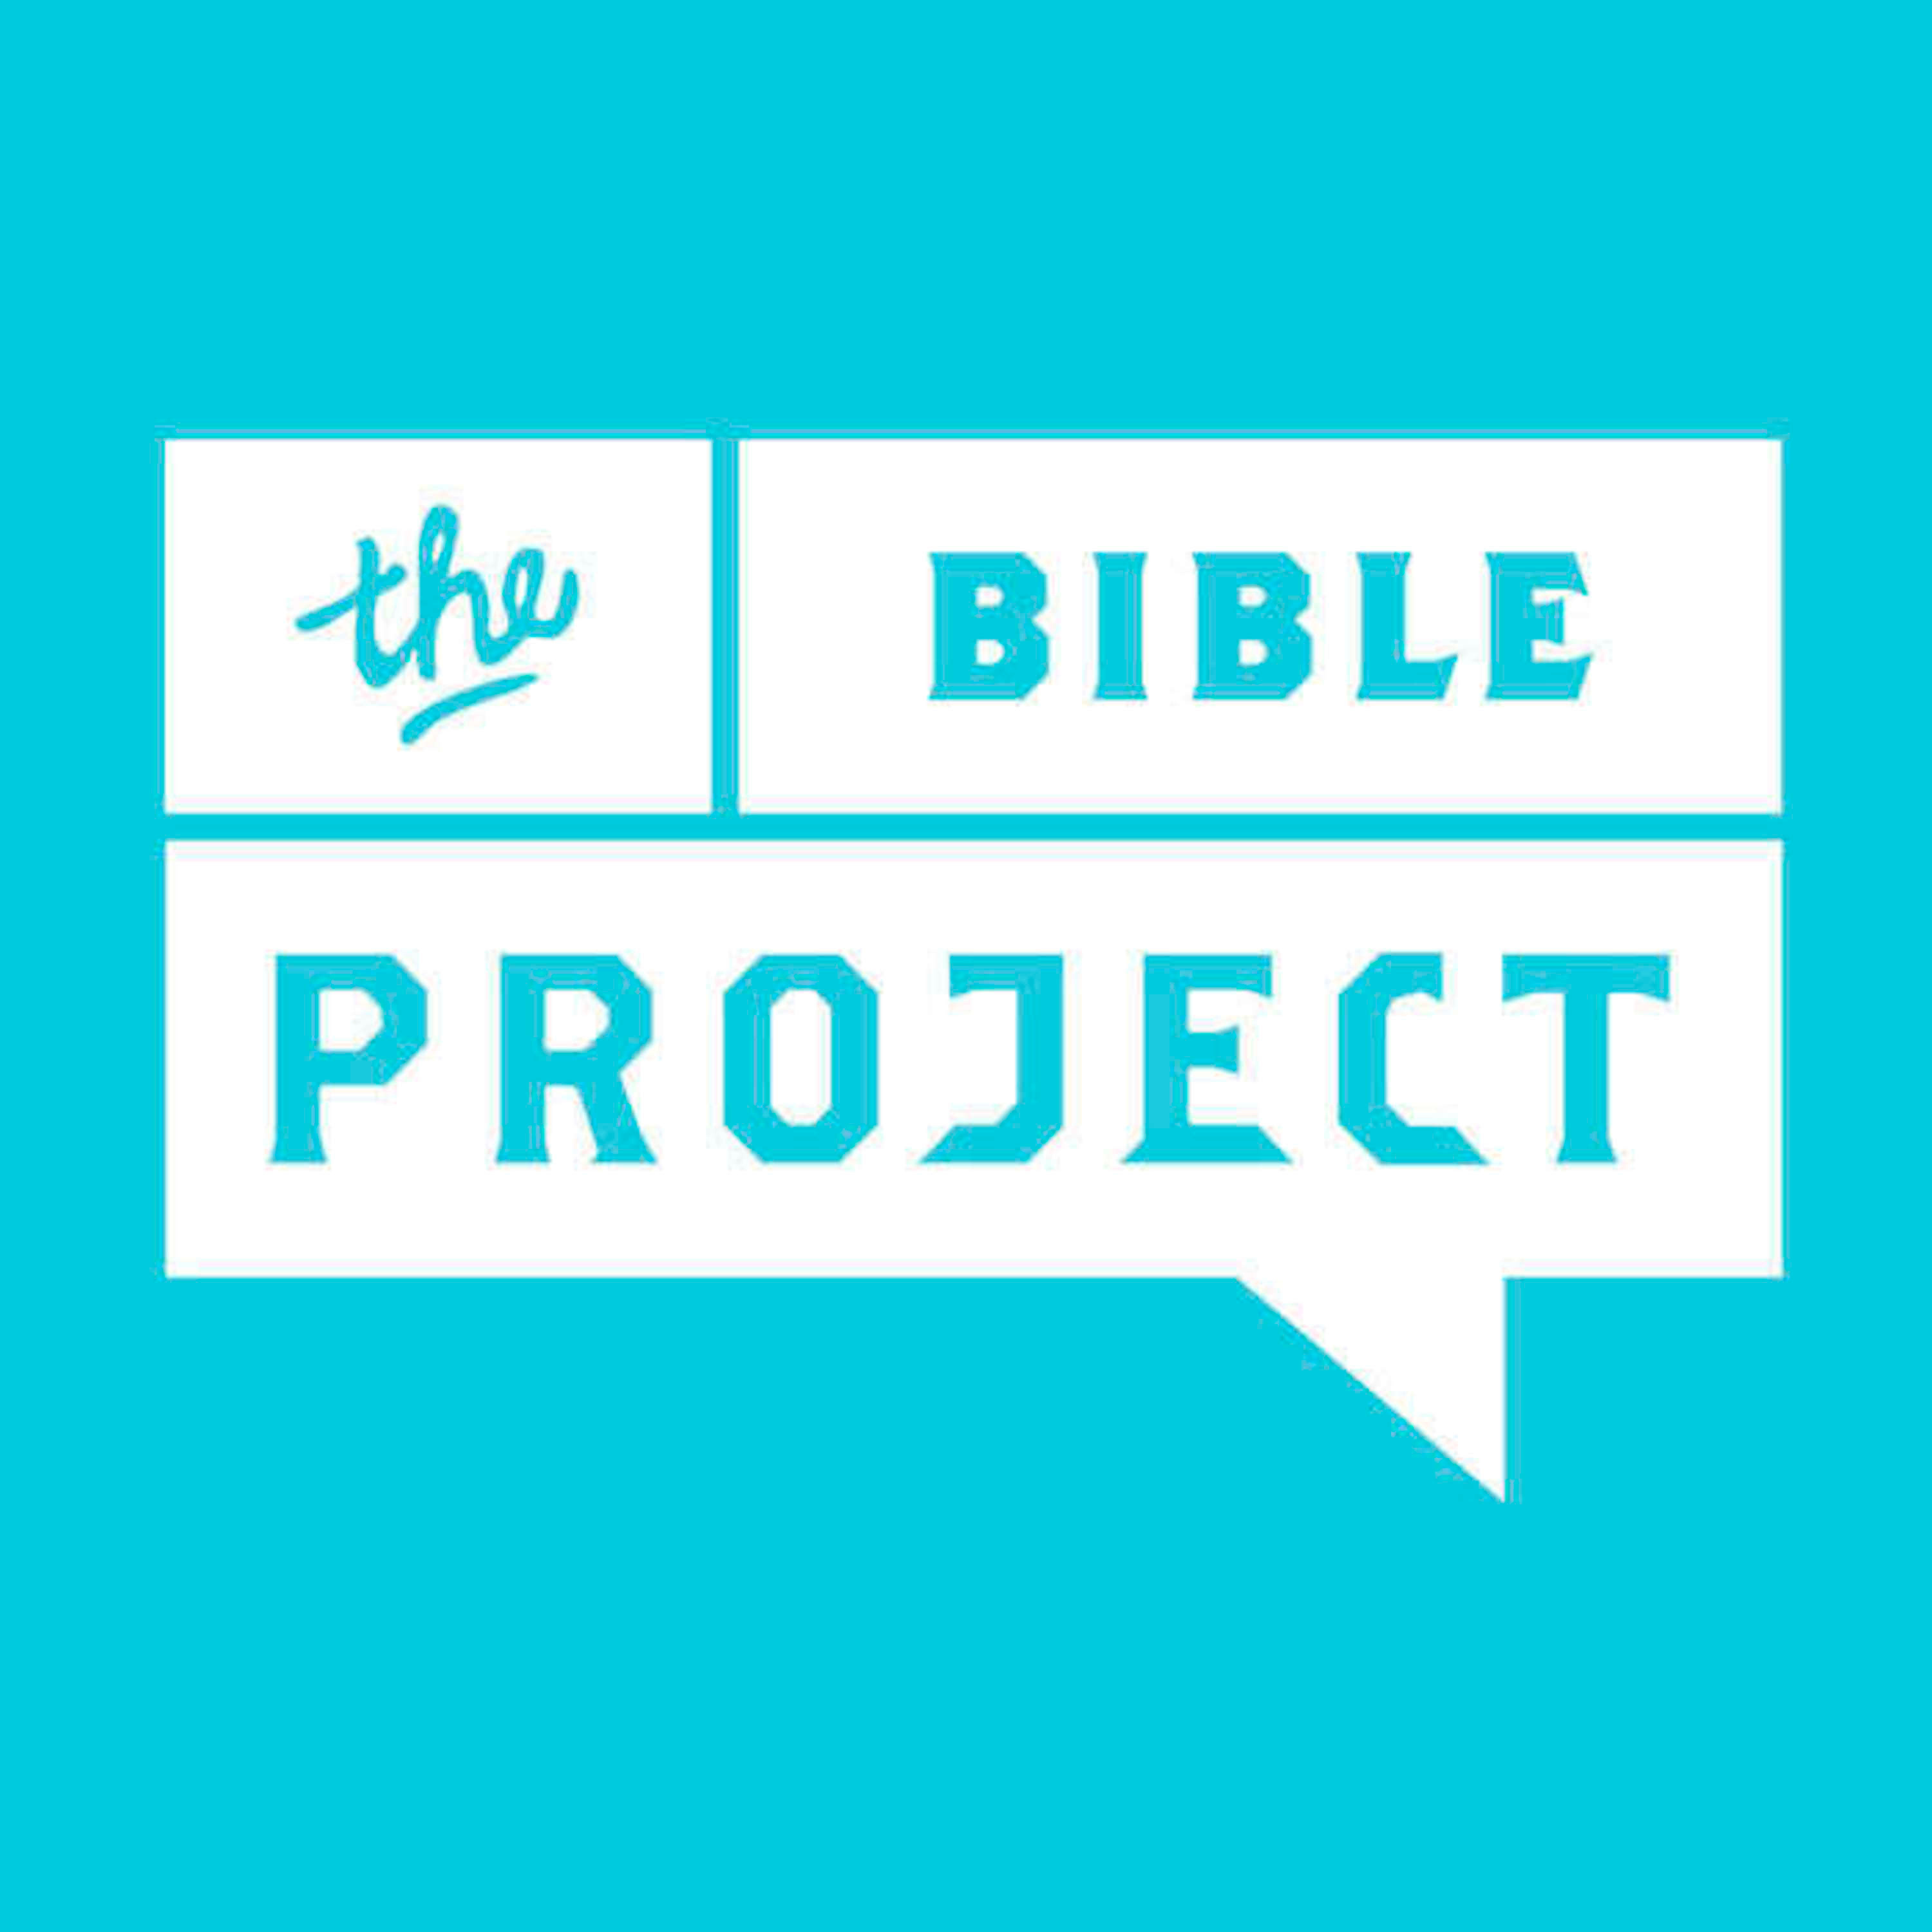 What's Next for the Bible Project